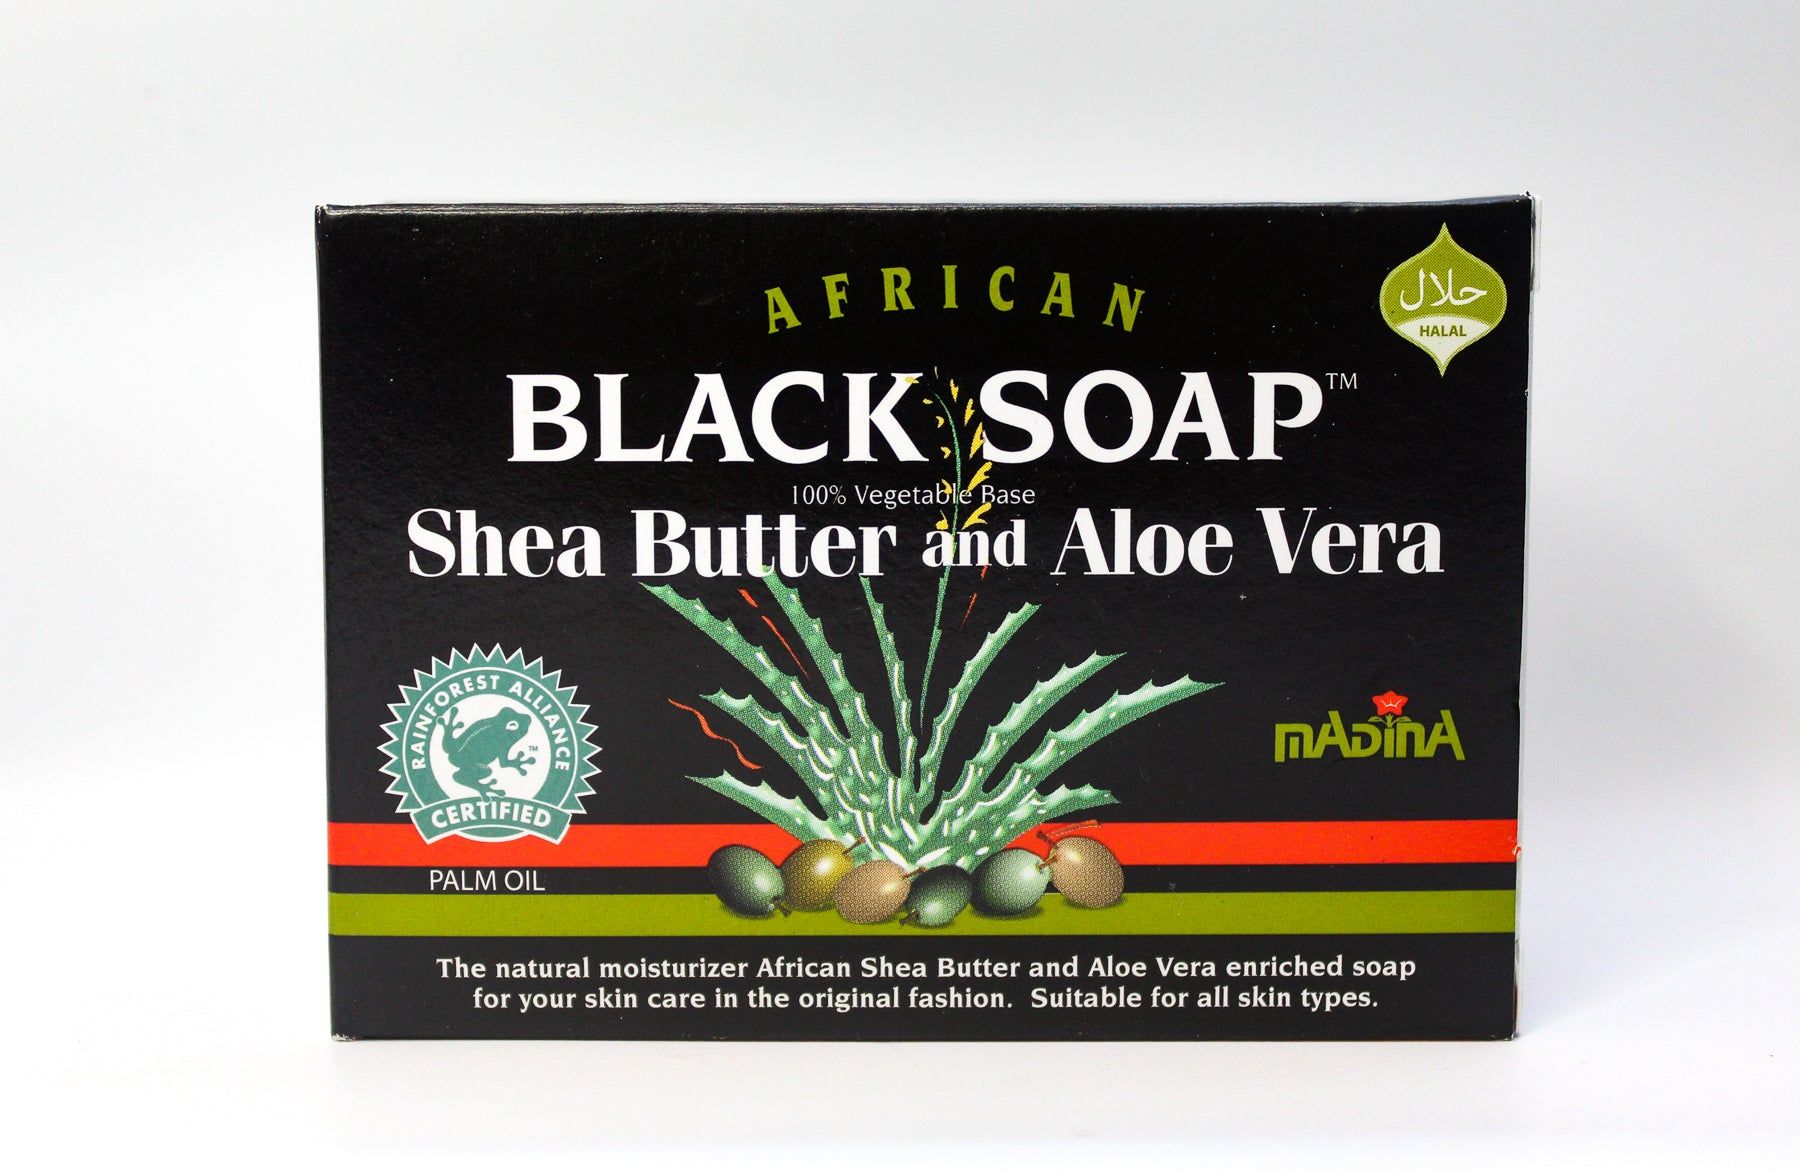 Shea Butter & Aloe Vera Black Soap, 3.5oz